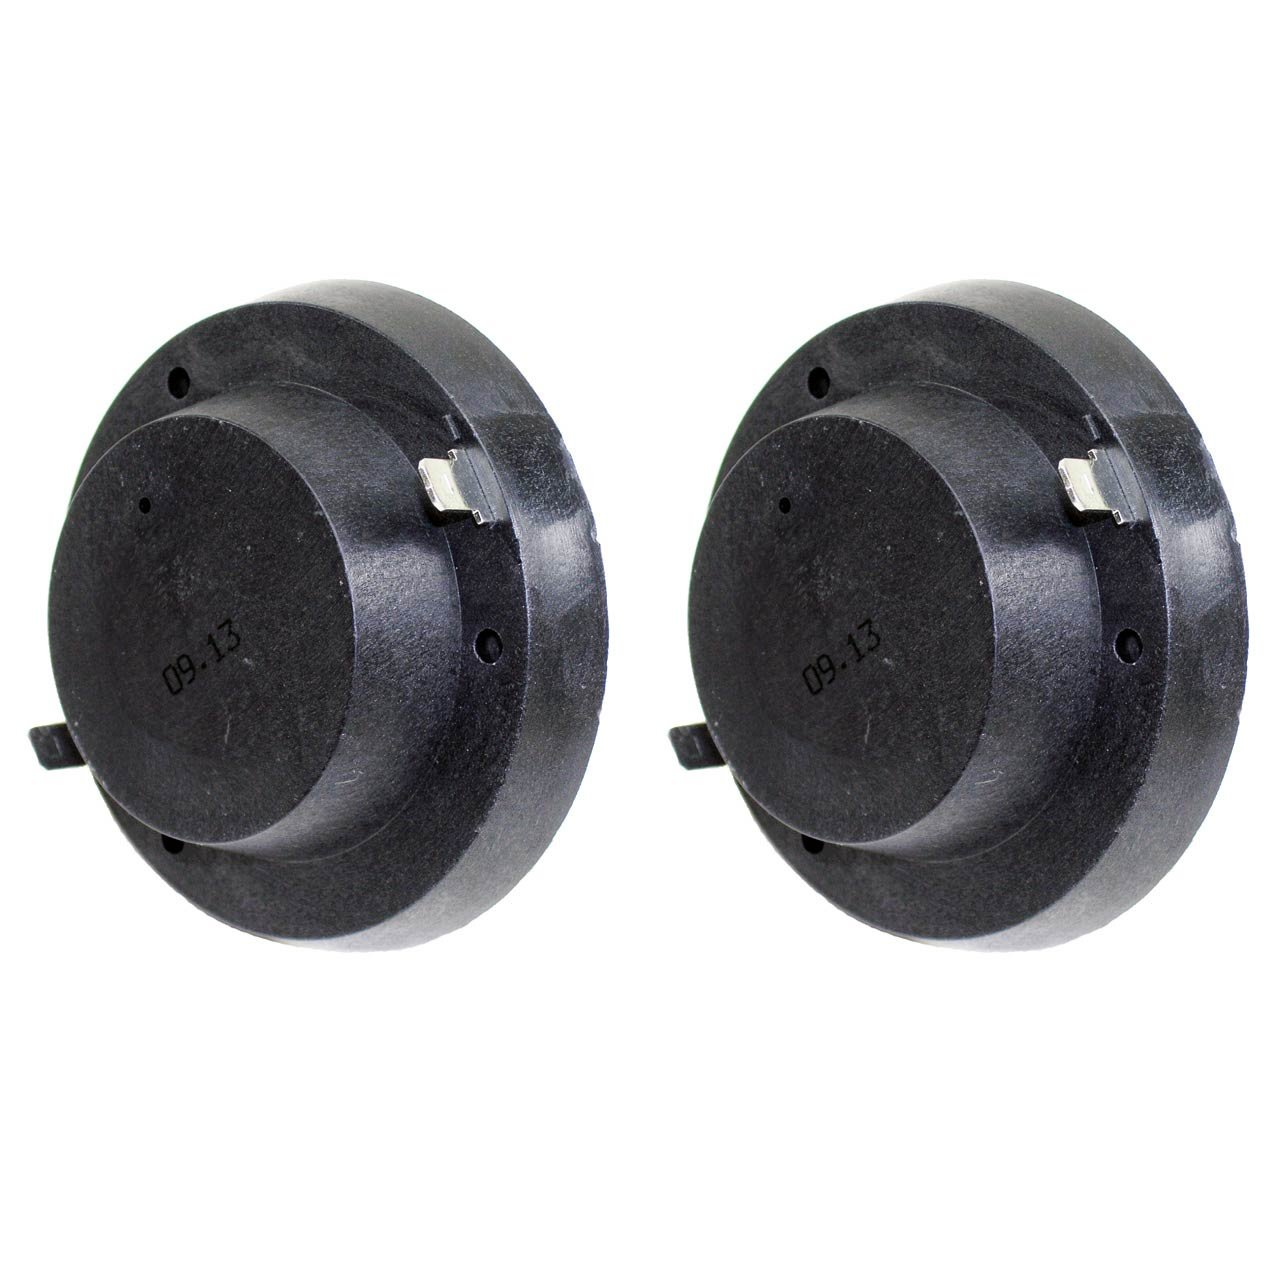 SS Audio Diaphragm 2-Pack for JBL Speaker Horn SR Series, MR8 Series, Urei, 2416H, 2416H-1, D-2416, 64314-02, and many others